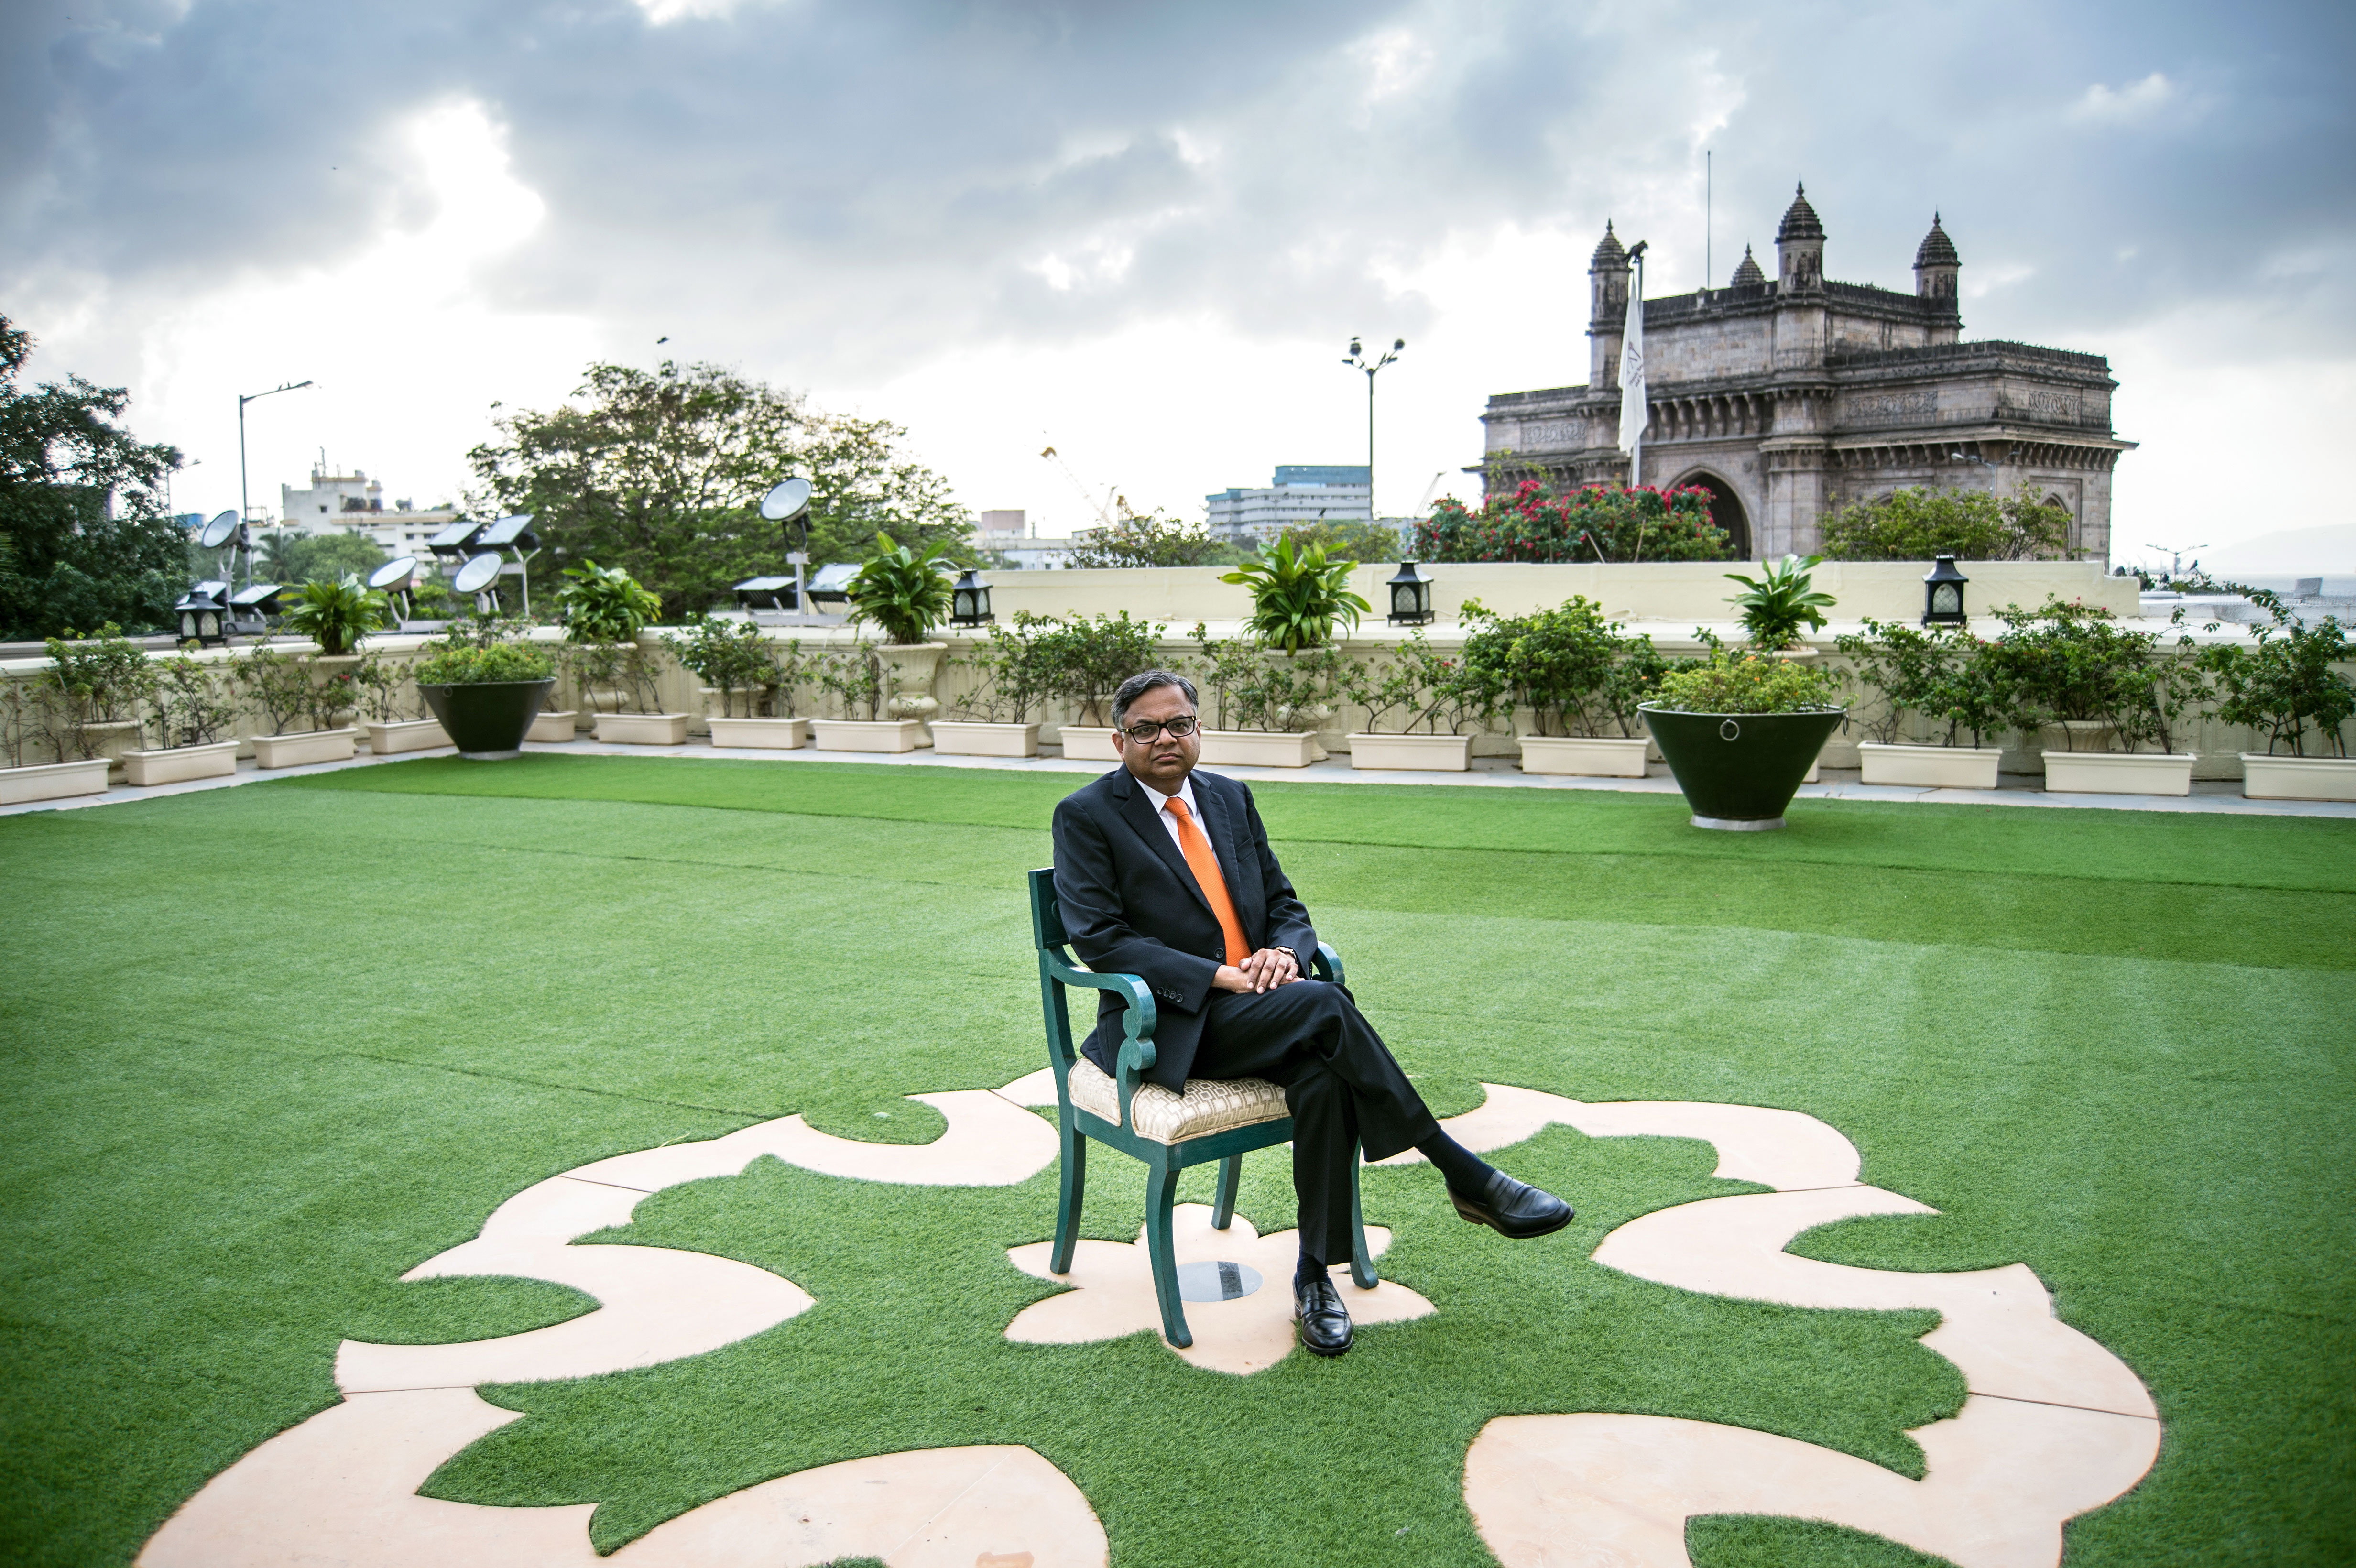 "Natarajan ""Chandra"" Chandrasekaran on the roof of the Taj Mahal Palace Hotel in Mumbai, with the Gateway of India monument in the background. As a chairman of Tata Sons, he oversees a sprawling conflomerate with some 700,000 employees and more than $100 billion in revenue."